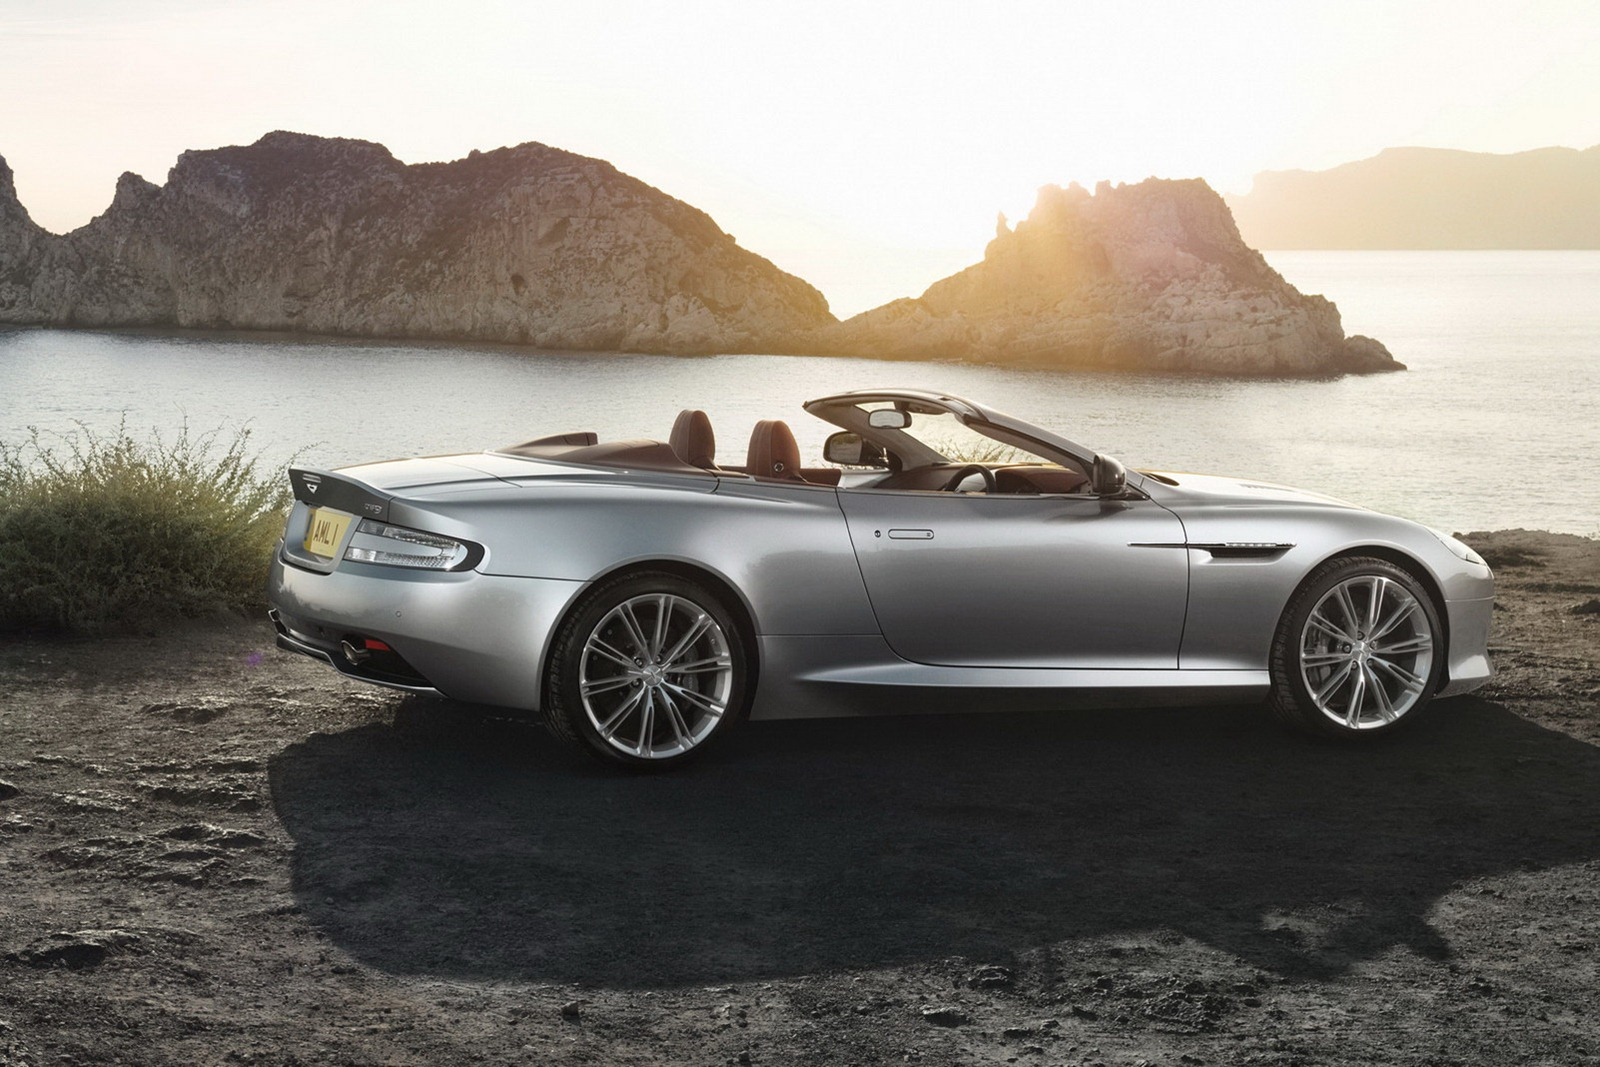 Aston_Martin_DB9_Volante_2013_Sunset